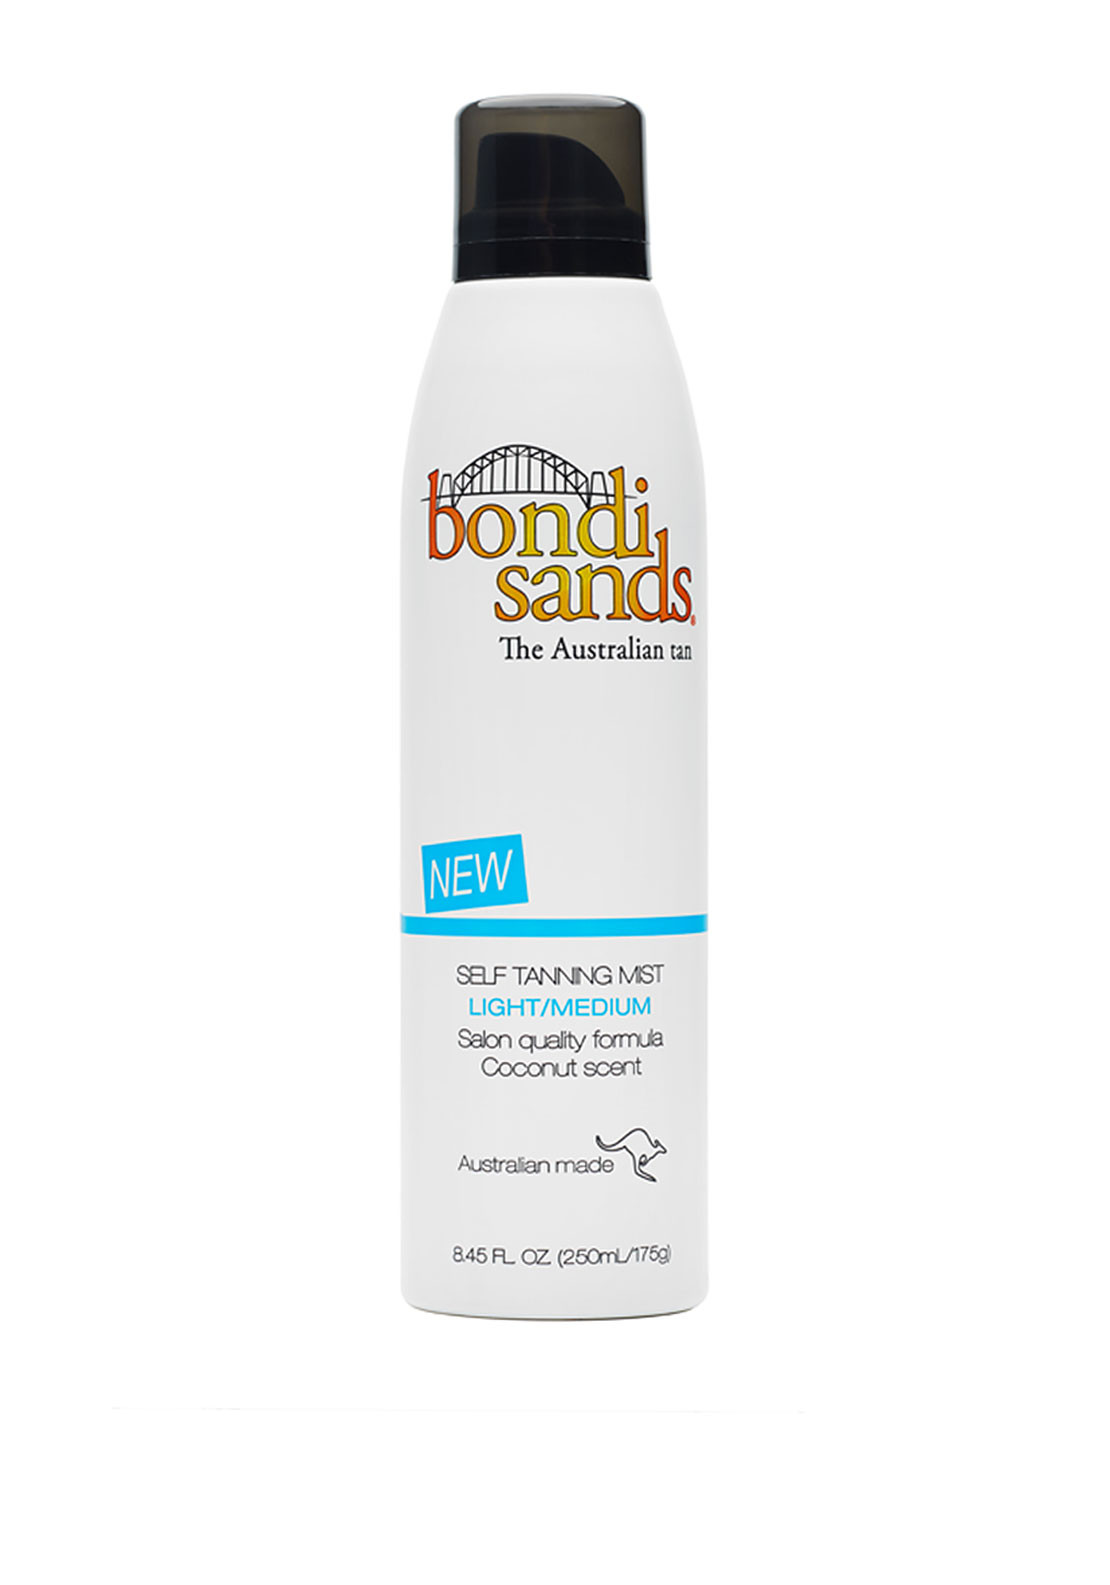 Bondi Sands Self Tanning Mist, Light/ Medium